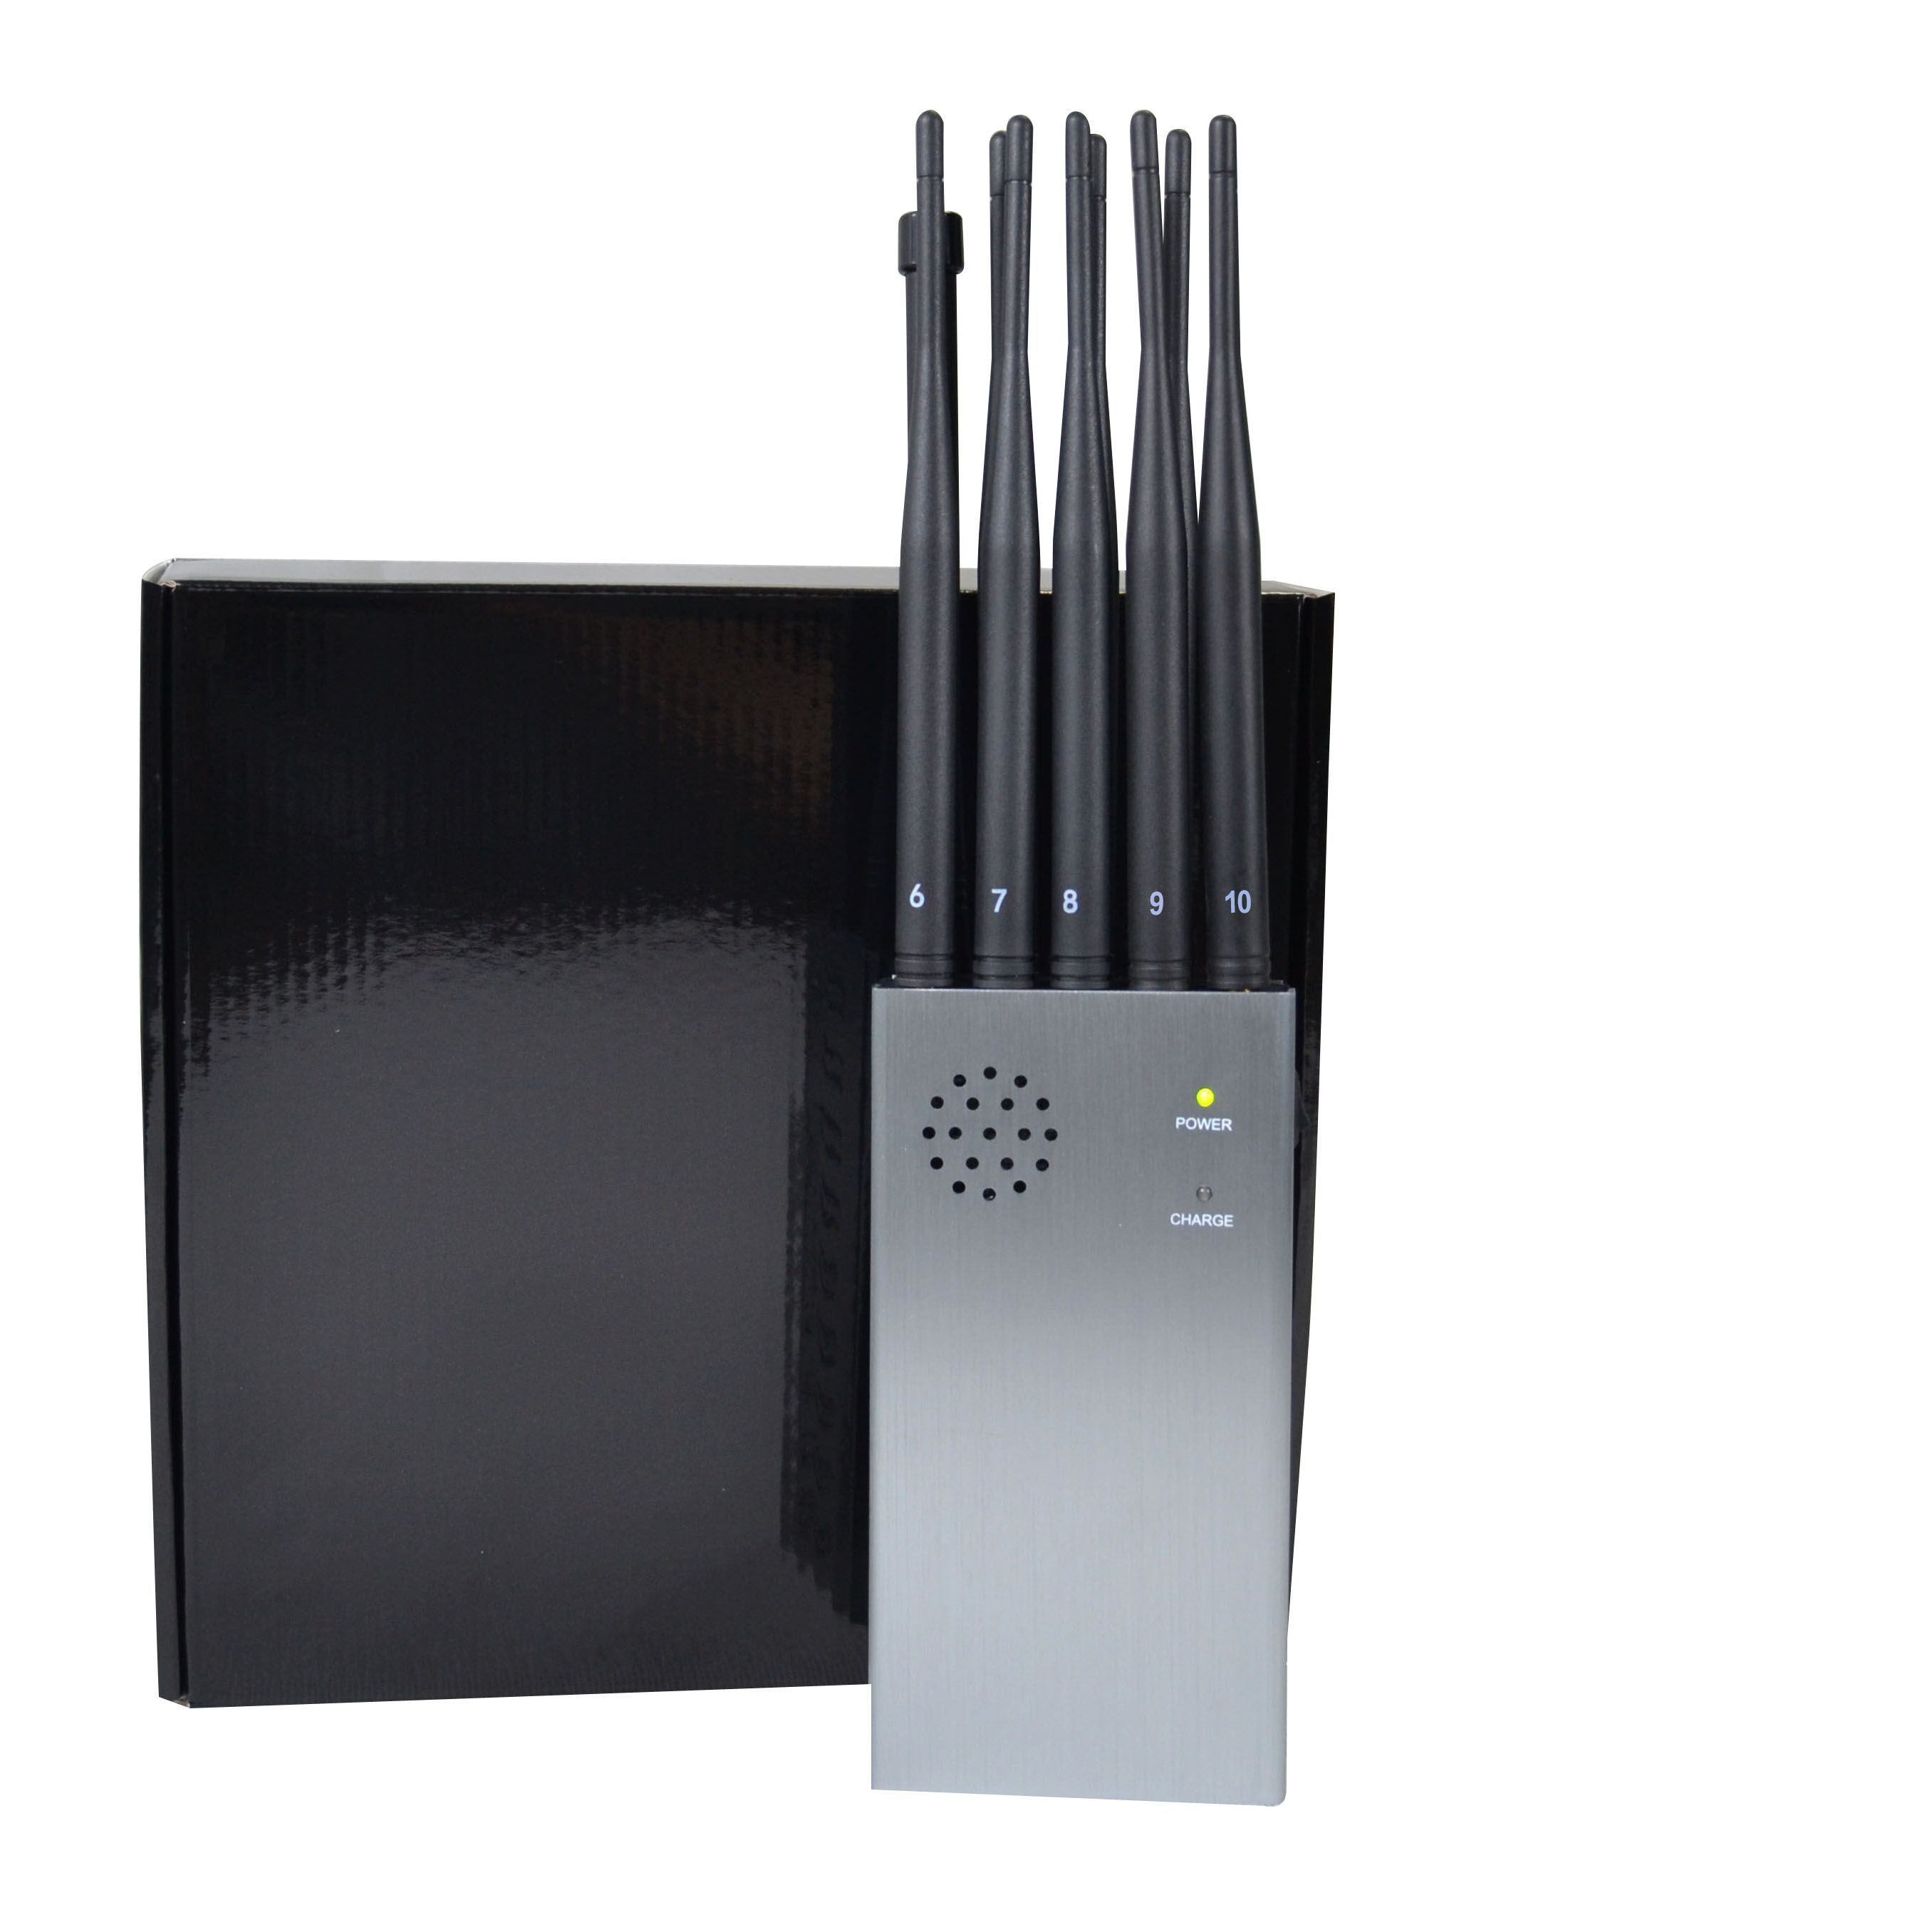 mobile phone blocker Yonkers - China King Jammer with Portable 10 Antennas Including 2g 3G 5g 4G WiFi, GPS Remote Control Lojack Signals - China 8000mA Battery Jammer, Large Volume Power Signal Blocker